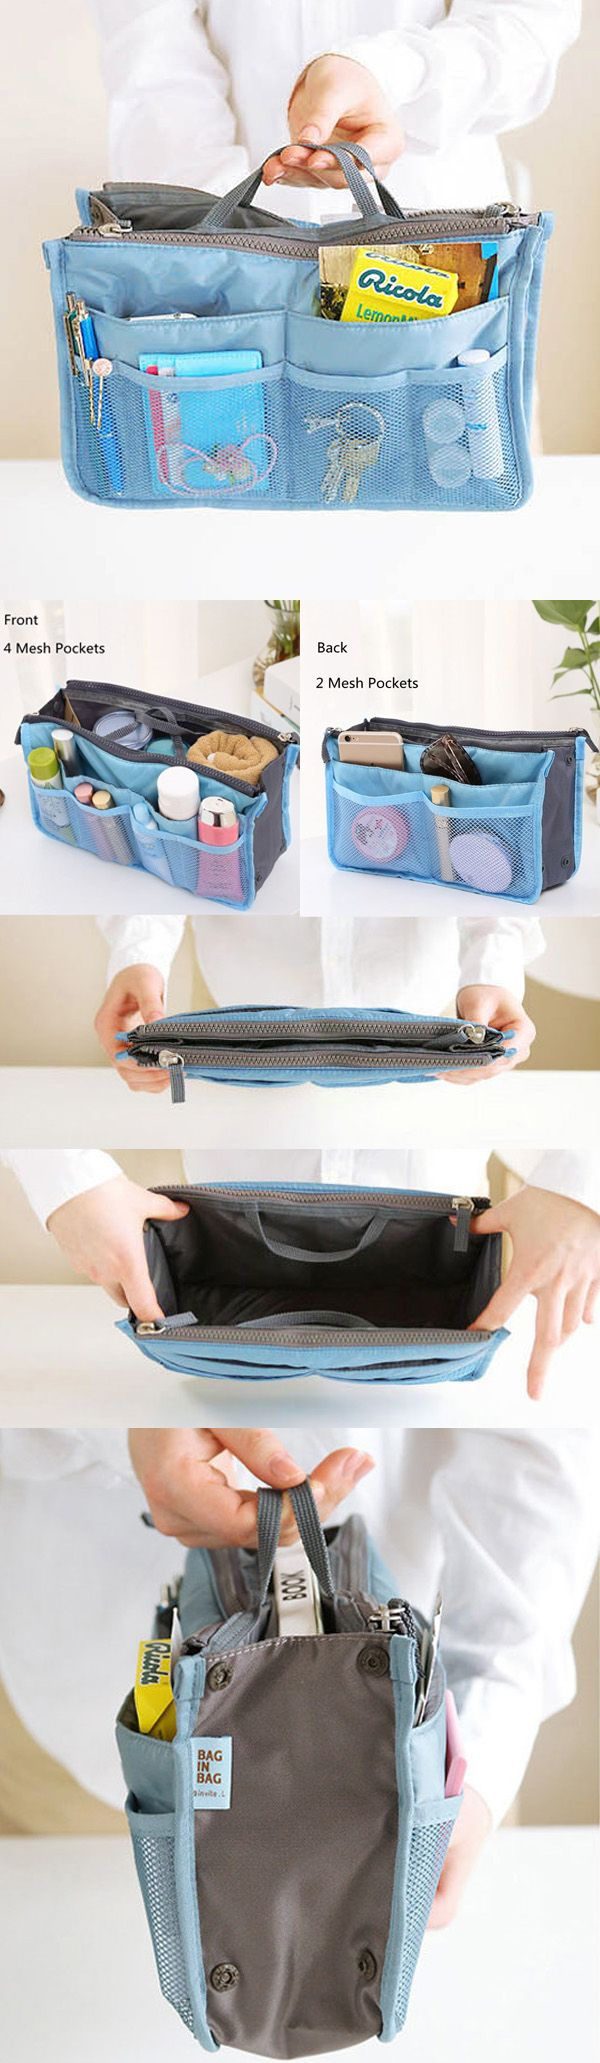 US$5.00 Women Travel Insert Handbag,Nylon Large Tidy Bag, Cosmetic Bag For Travel